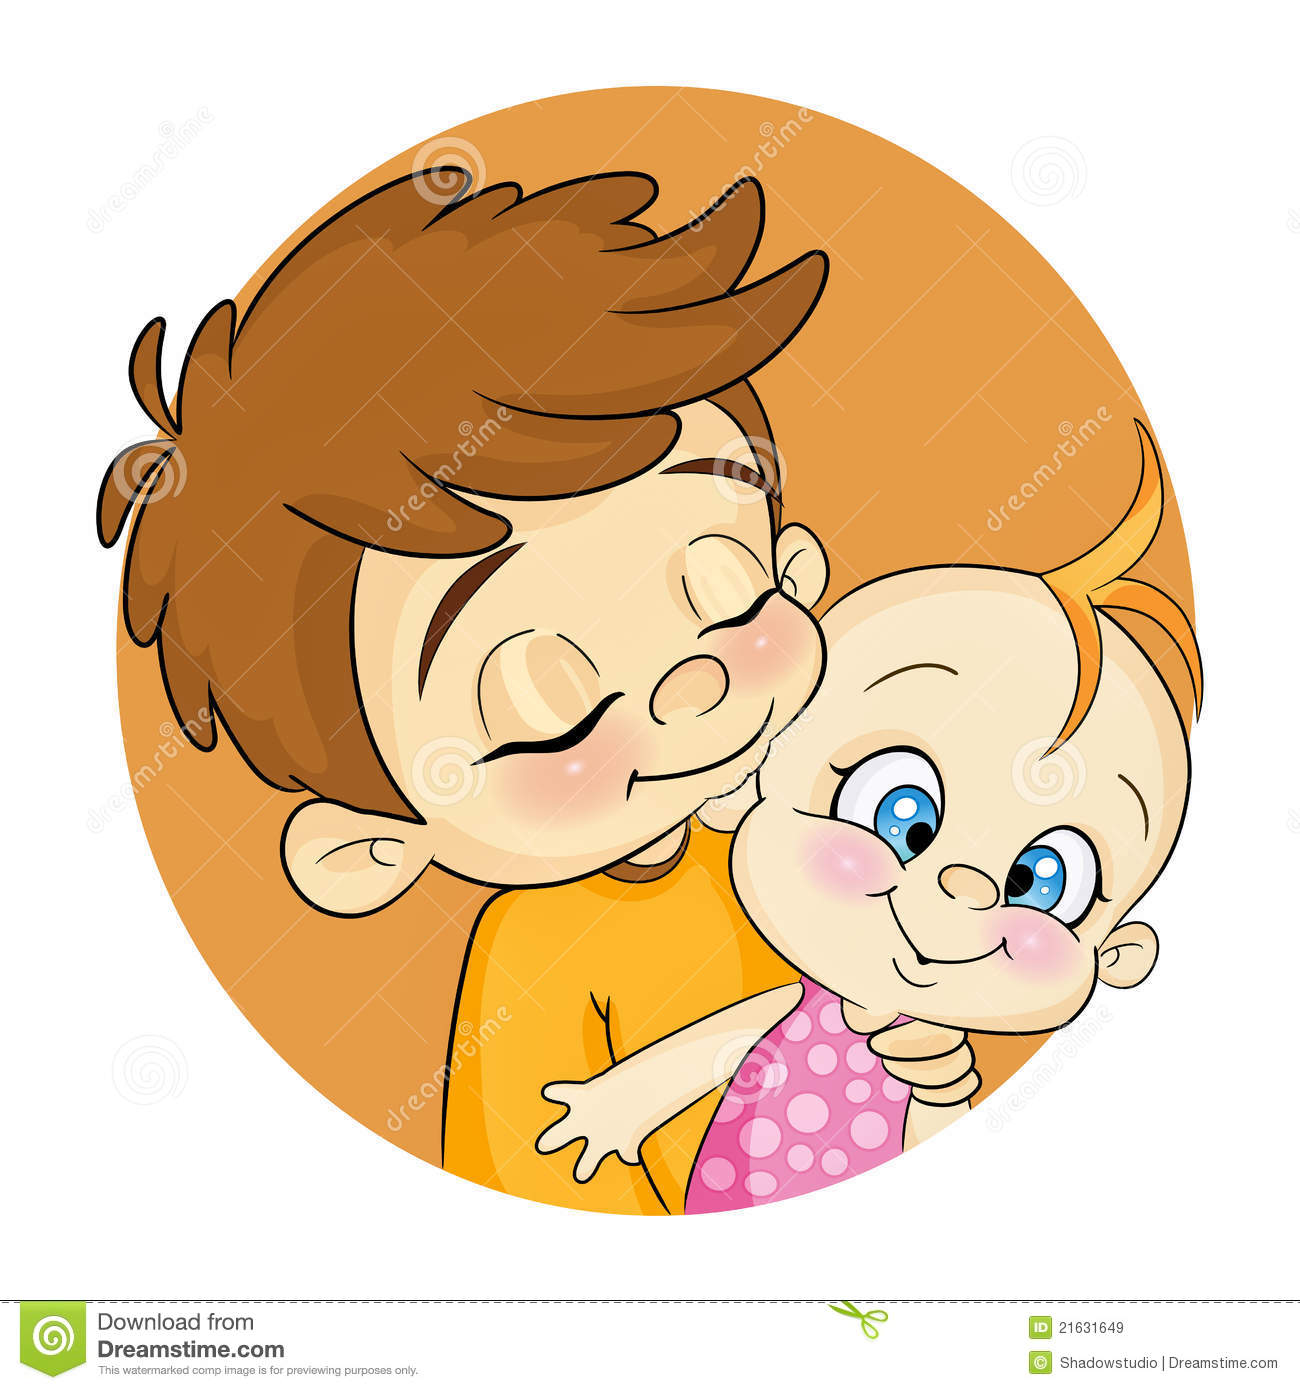 2 clipart sibling. Big brother cartoons